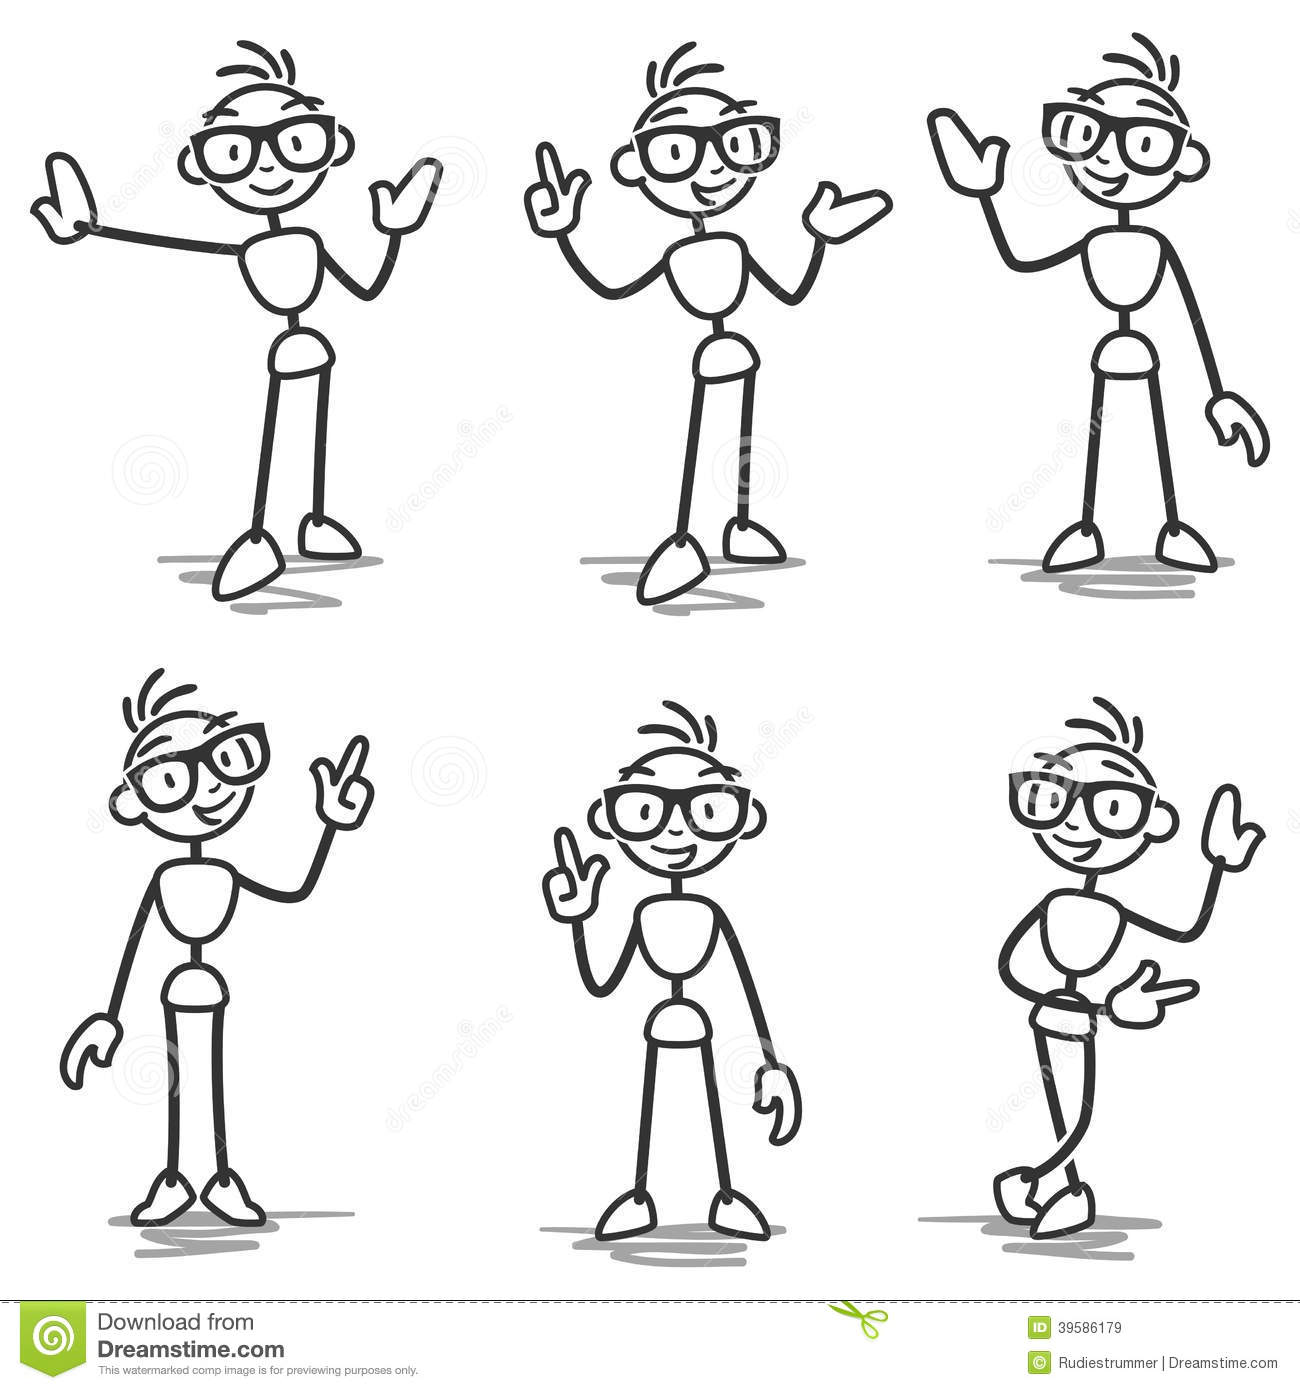 Cartoon Fundamentals The Secrets In Drawing Animals Vector 17361 also Muscular Man Sitting And Doing Bicep Curls Copy together with We want you in addition Arm Muscles Clipart as well Clock 01 03 32937. on vector cartoon showing